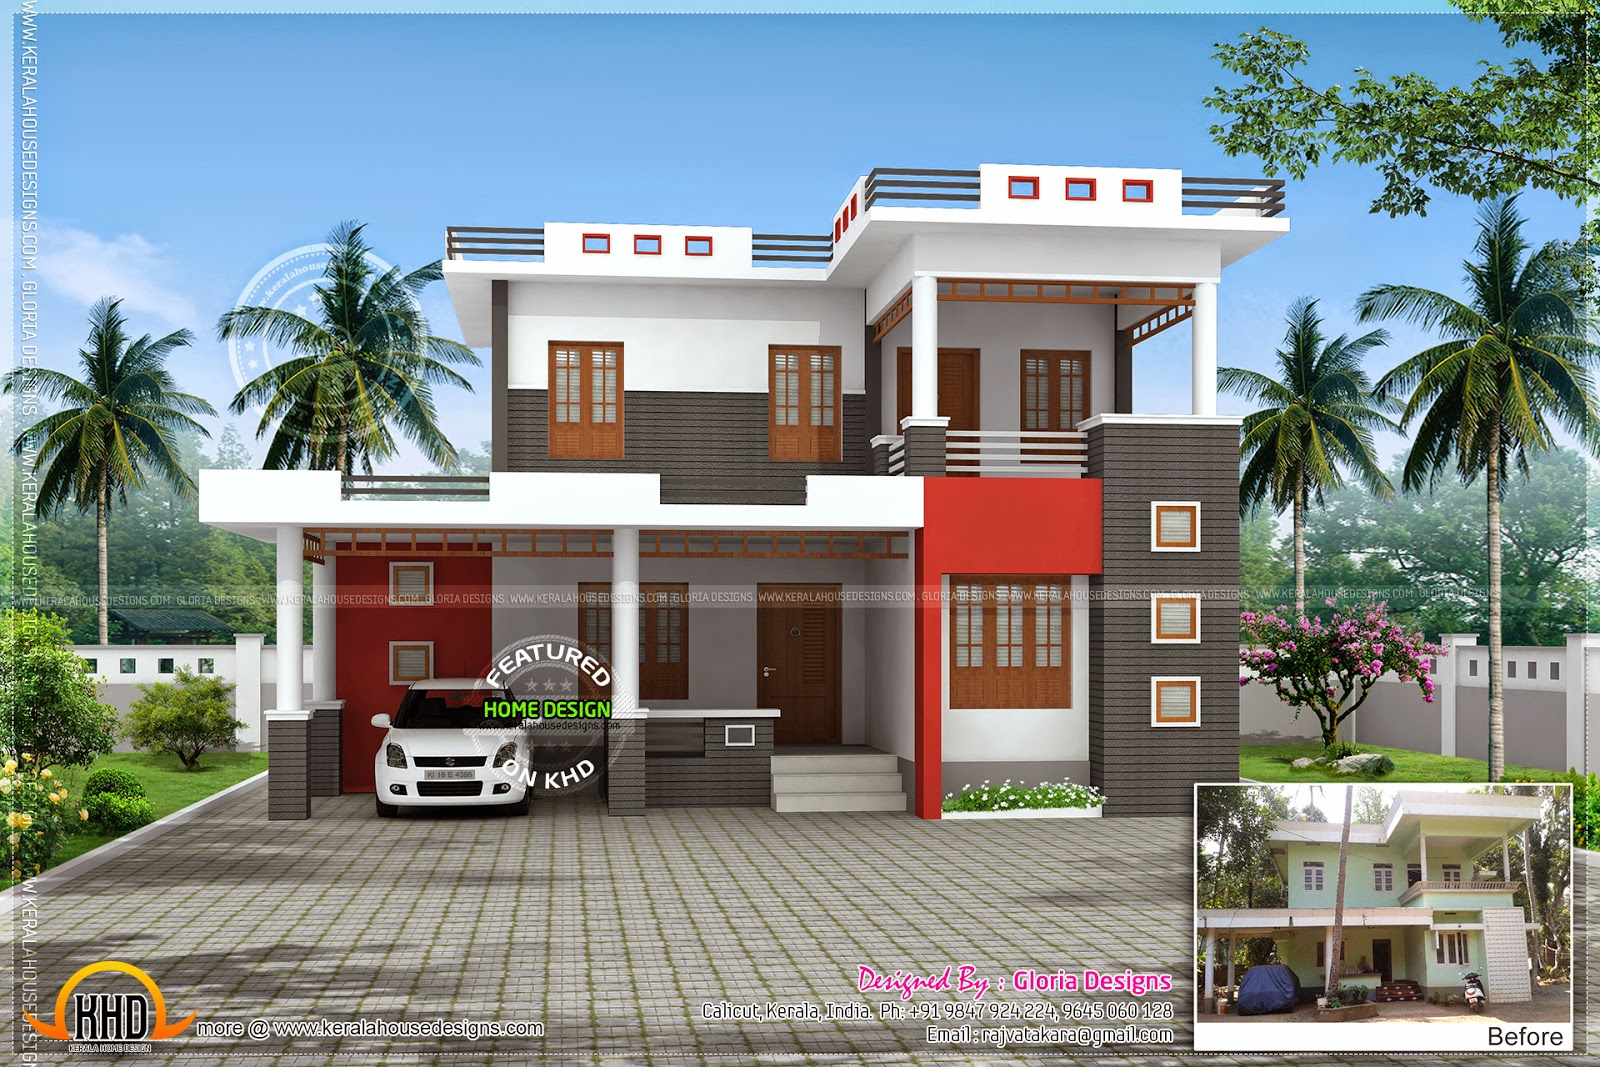 Renovation 3d Model For An Old House Kerala Home Design